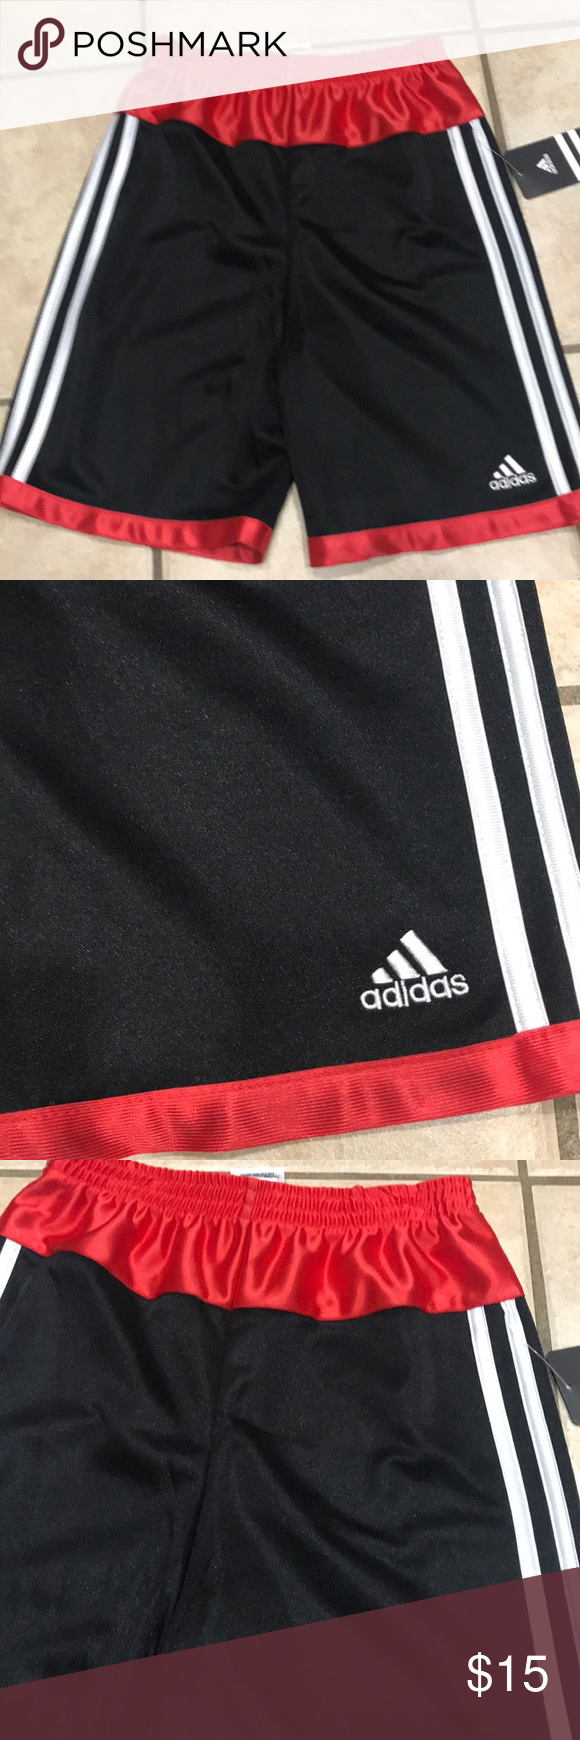 da23010fc New boys kids Adidas Black red shorts size 7 x New size 7 x NO TRADE adidas  Bottoms Shorts